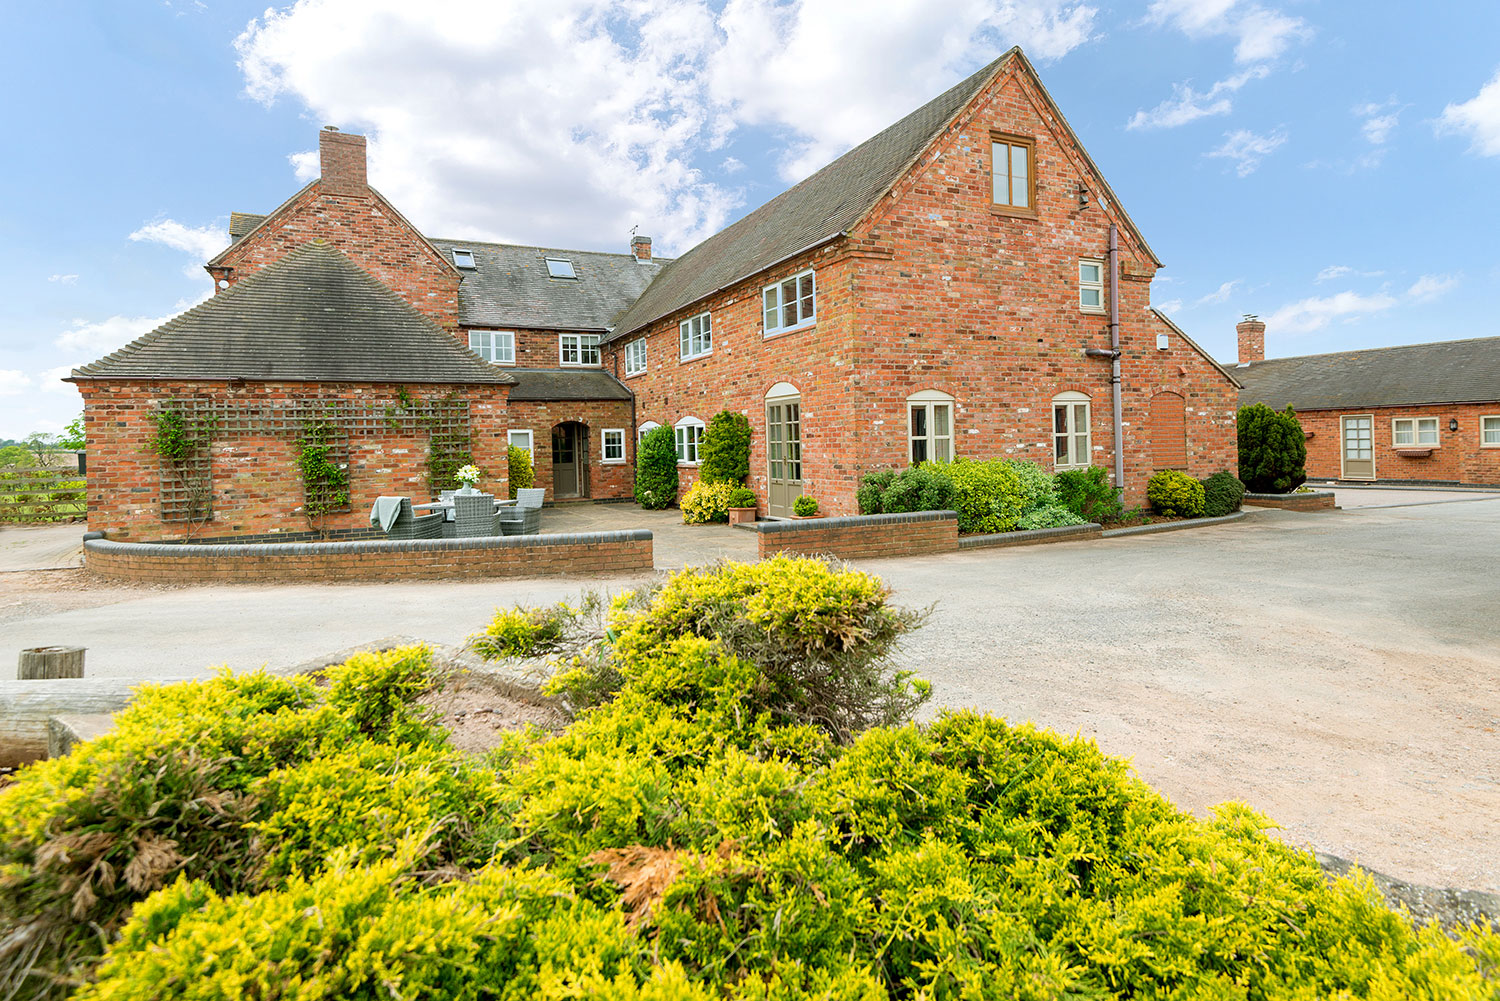 Holiday cottages and venue for team-building, parties and more | Upper Rectory Farm Cottages